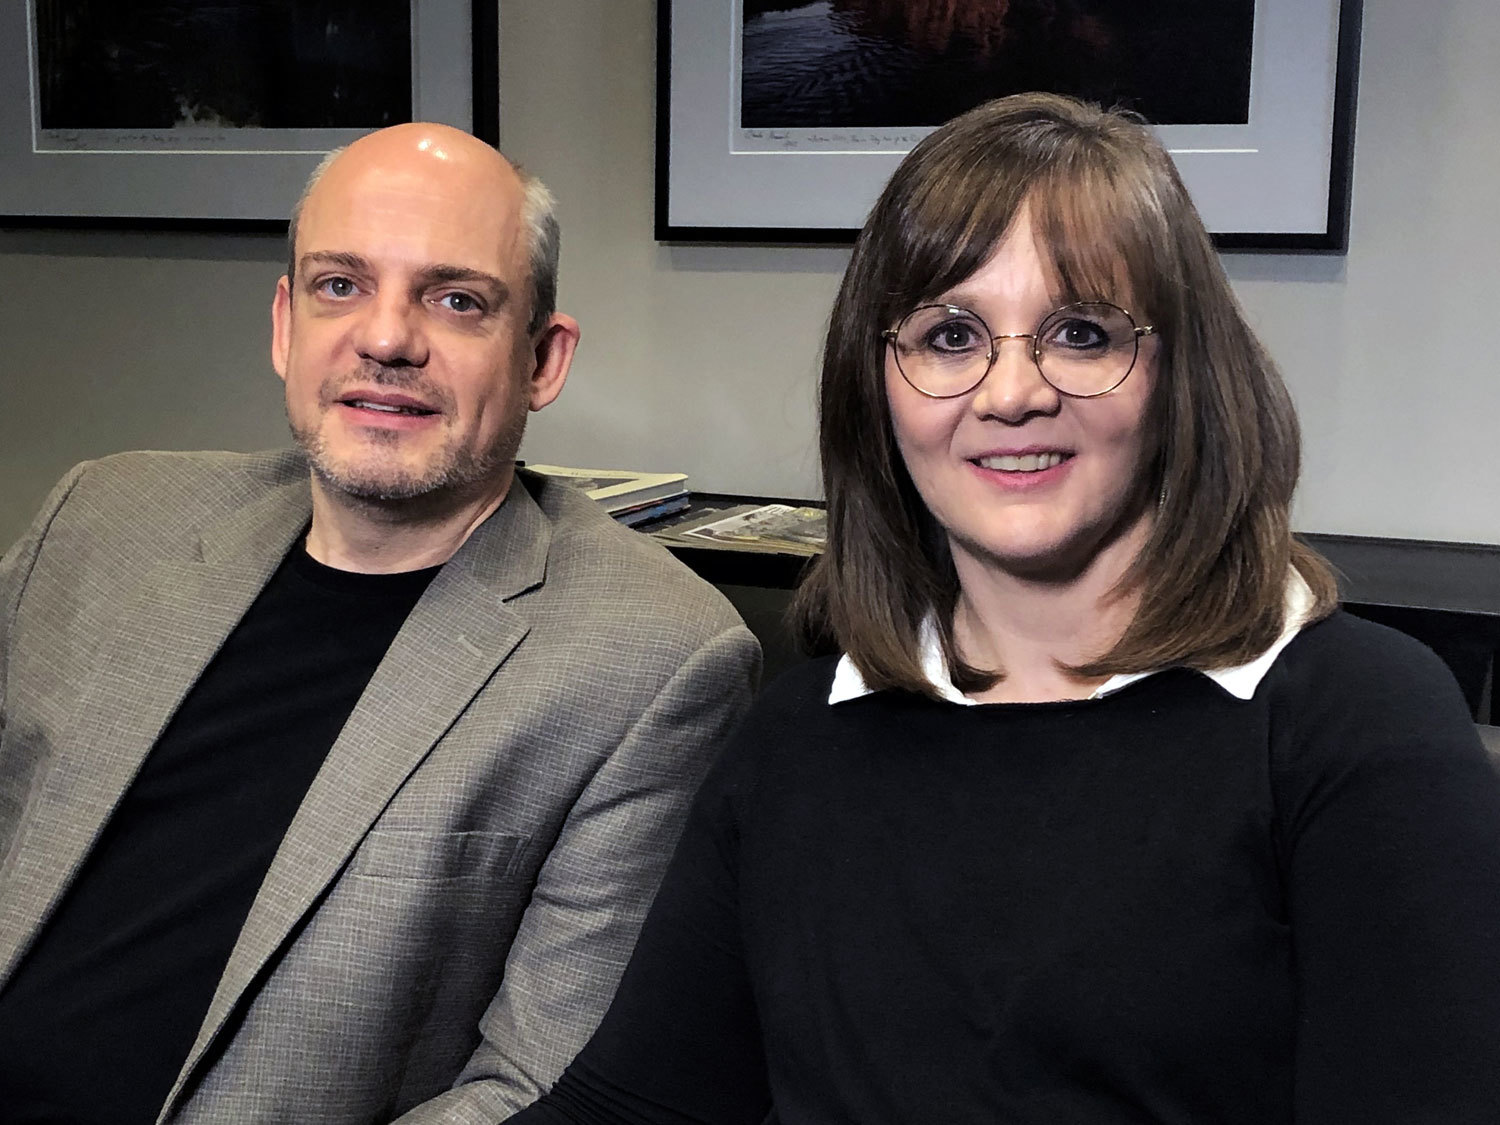 Matthew and Jennifer Dickson, who live in Arkansas, were the plaintiffs in a U.S. class-action lawsuit against Gospel for Asia. (Angela MacIvor/CBC)